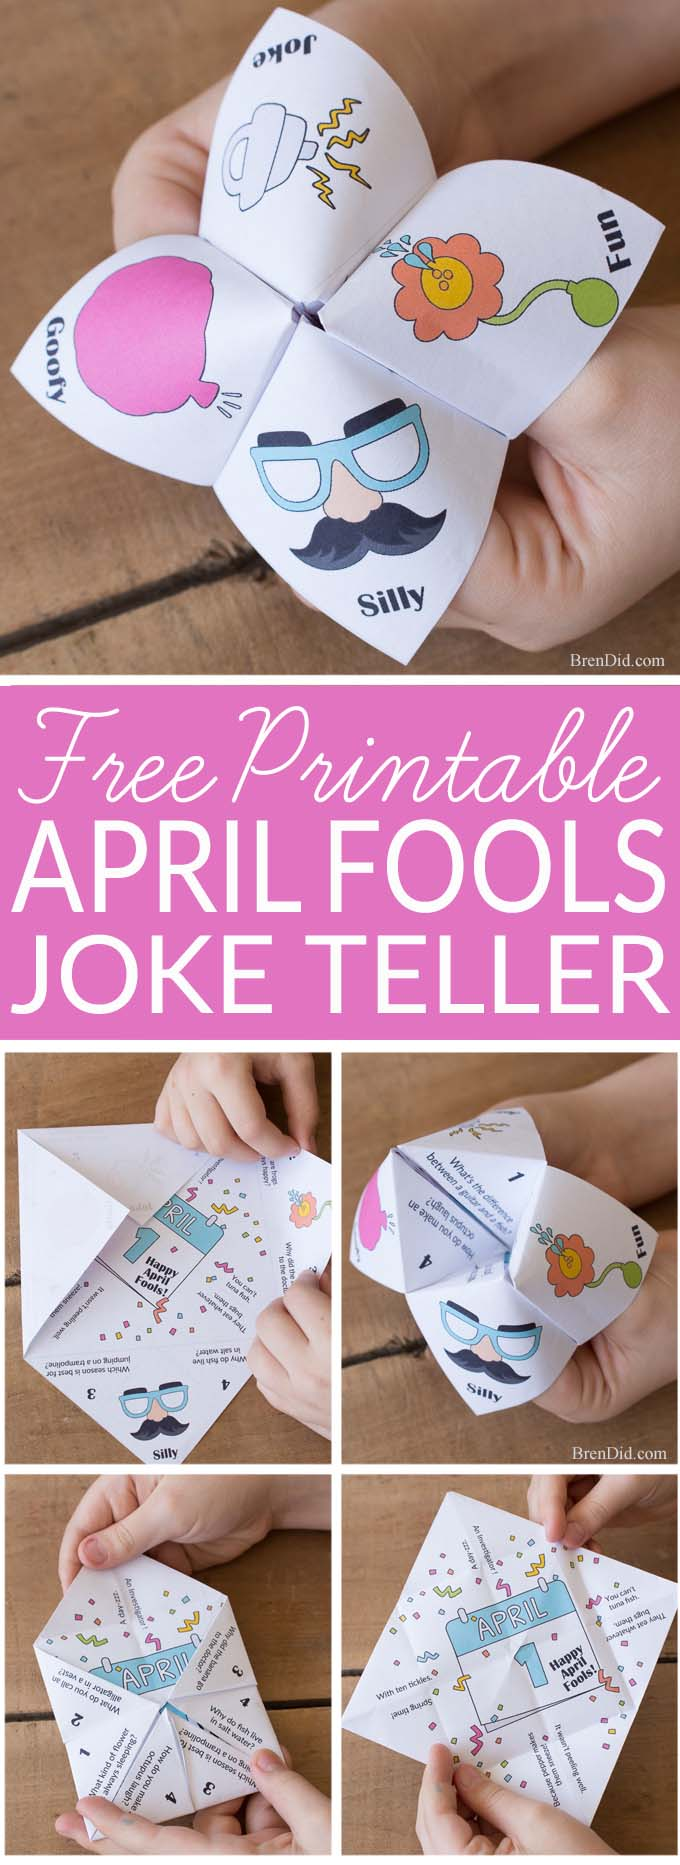 April Fools Jokes for Kids: Mixed Up Joke Teller - mixed up jokes and answers will have your kid laughing this April Fools Day | Aprils fools day prank for kids | fortune teller | cootie catcher | chatterbox | #joketeller #aprilfoolsday #fortuneteller